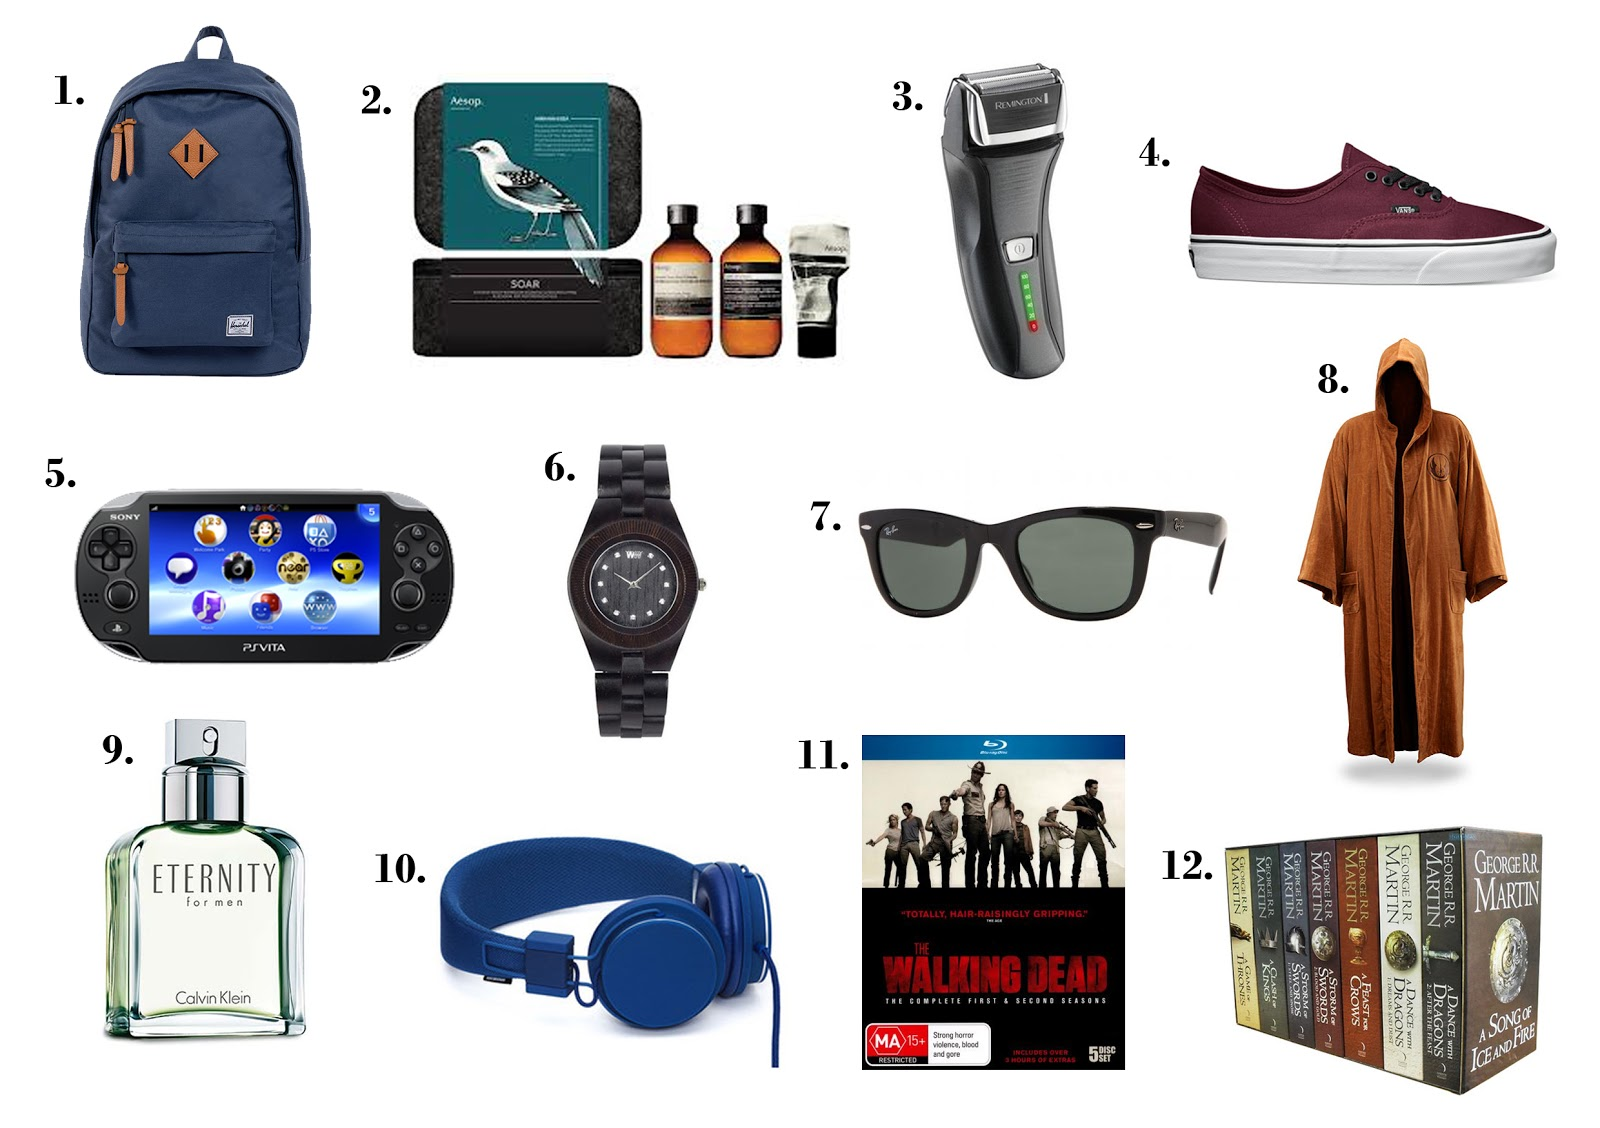 Mishelle 39 s sleepy time holiday gift guide part 5 for Best christmas gifts for boyfriend 2012